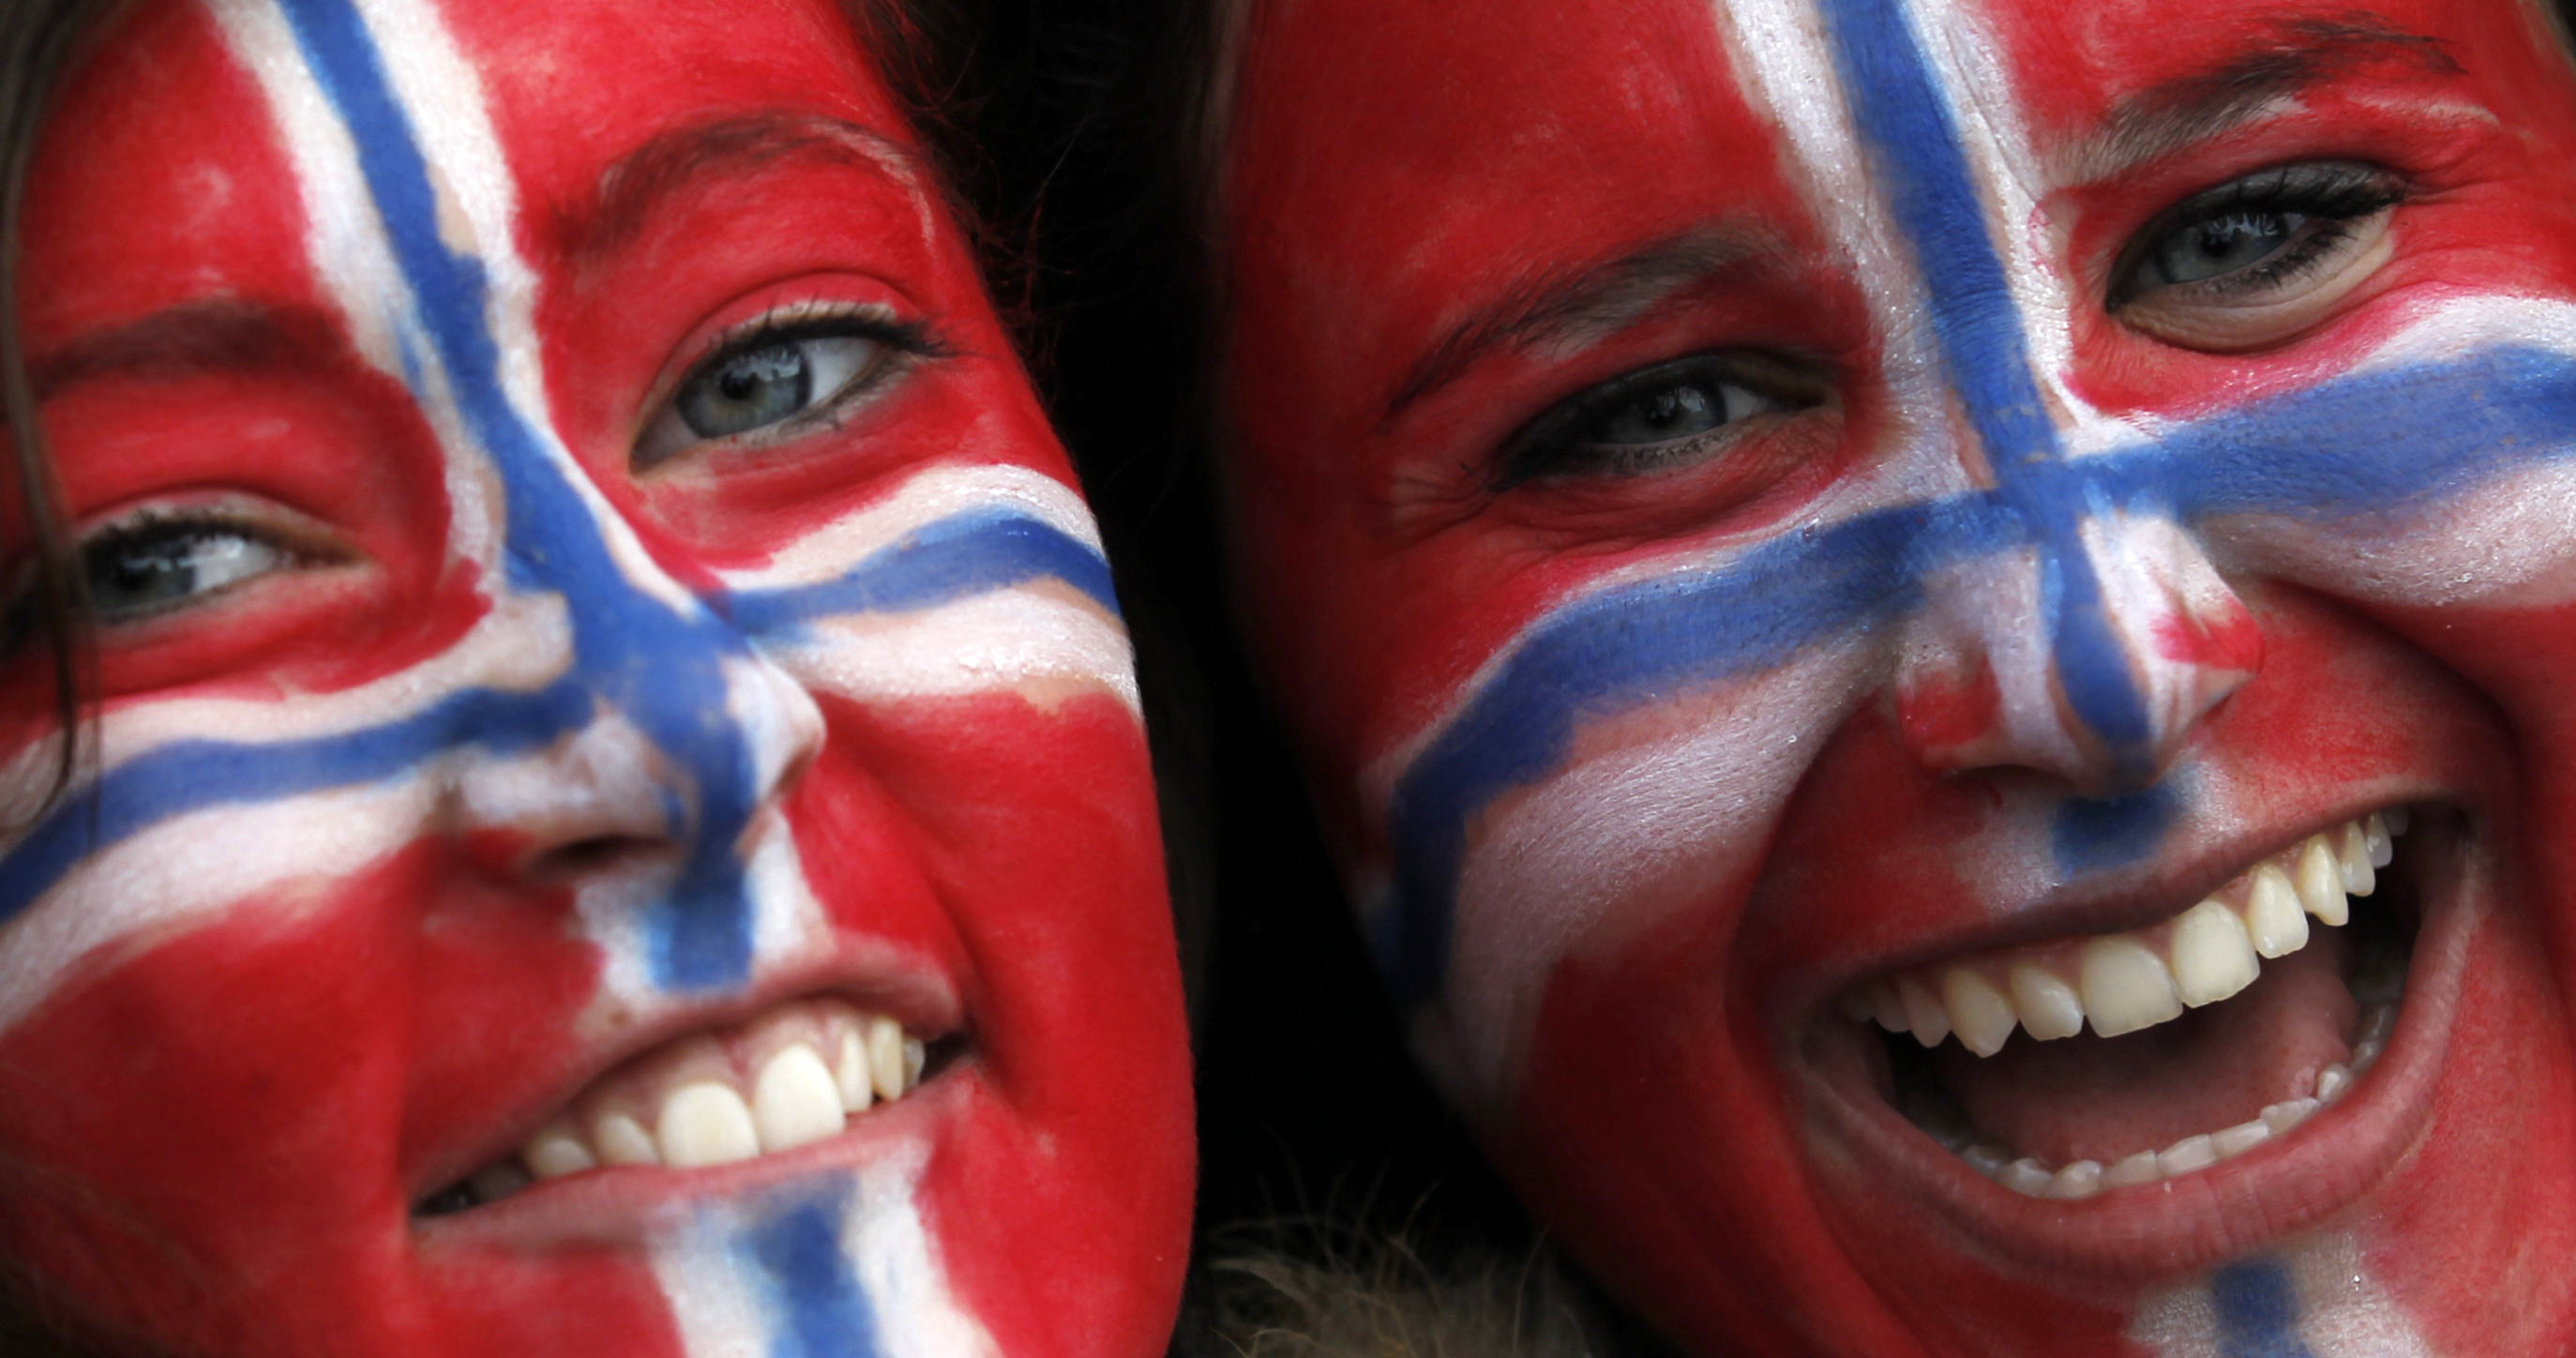 two women with the norwegian flag painted on their face smile for a photograph